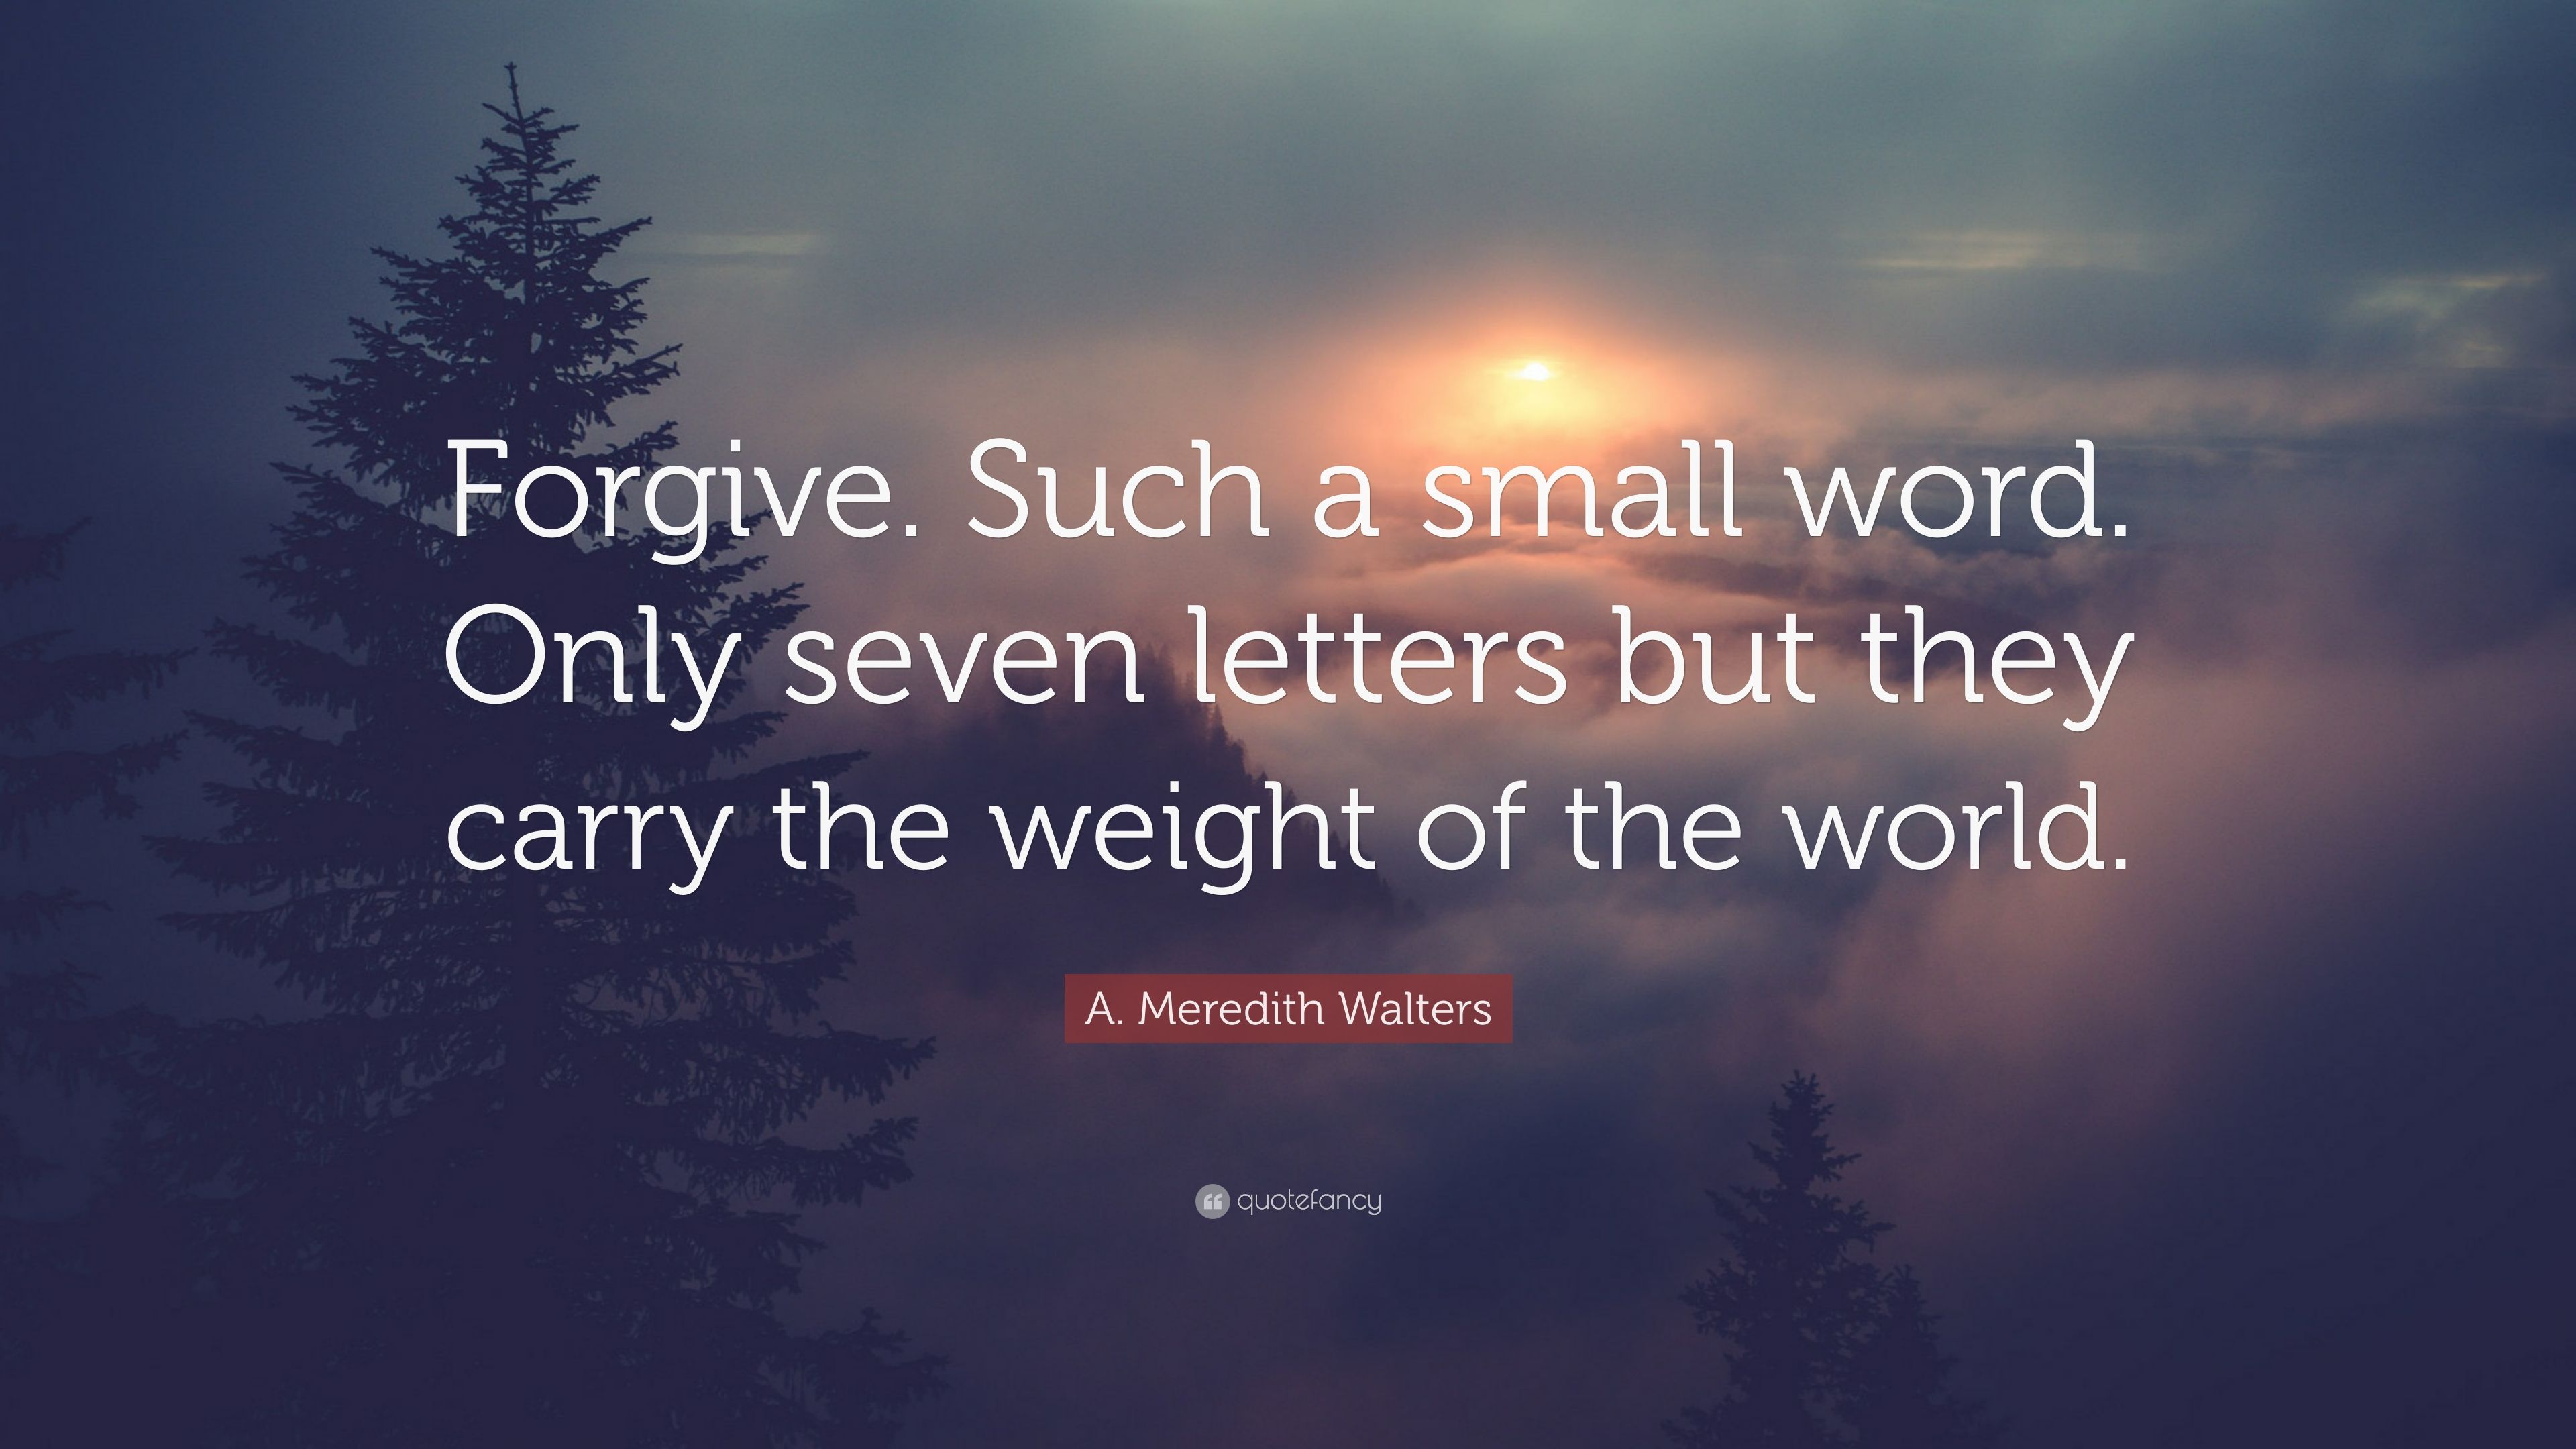 Forgive. Such a small word. Only seven letters, but they carry the weight of the world – A. Meredith Walters [1200×675]